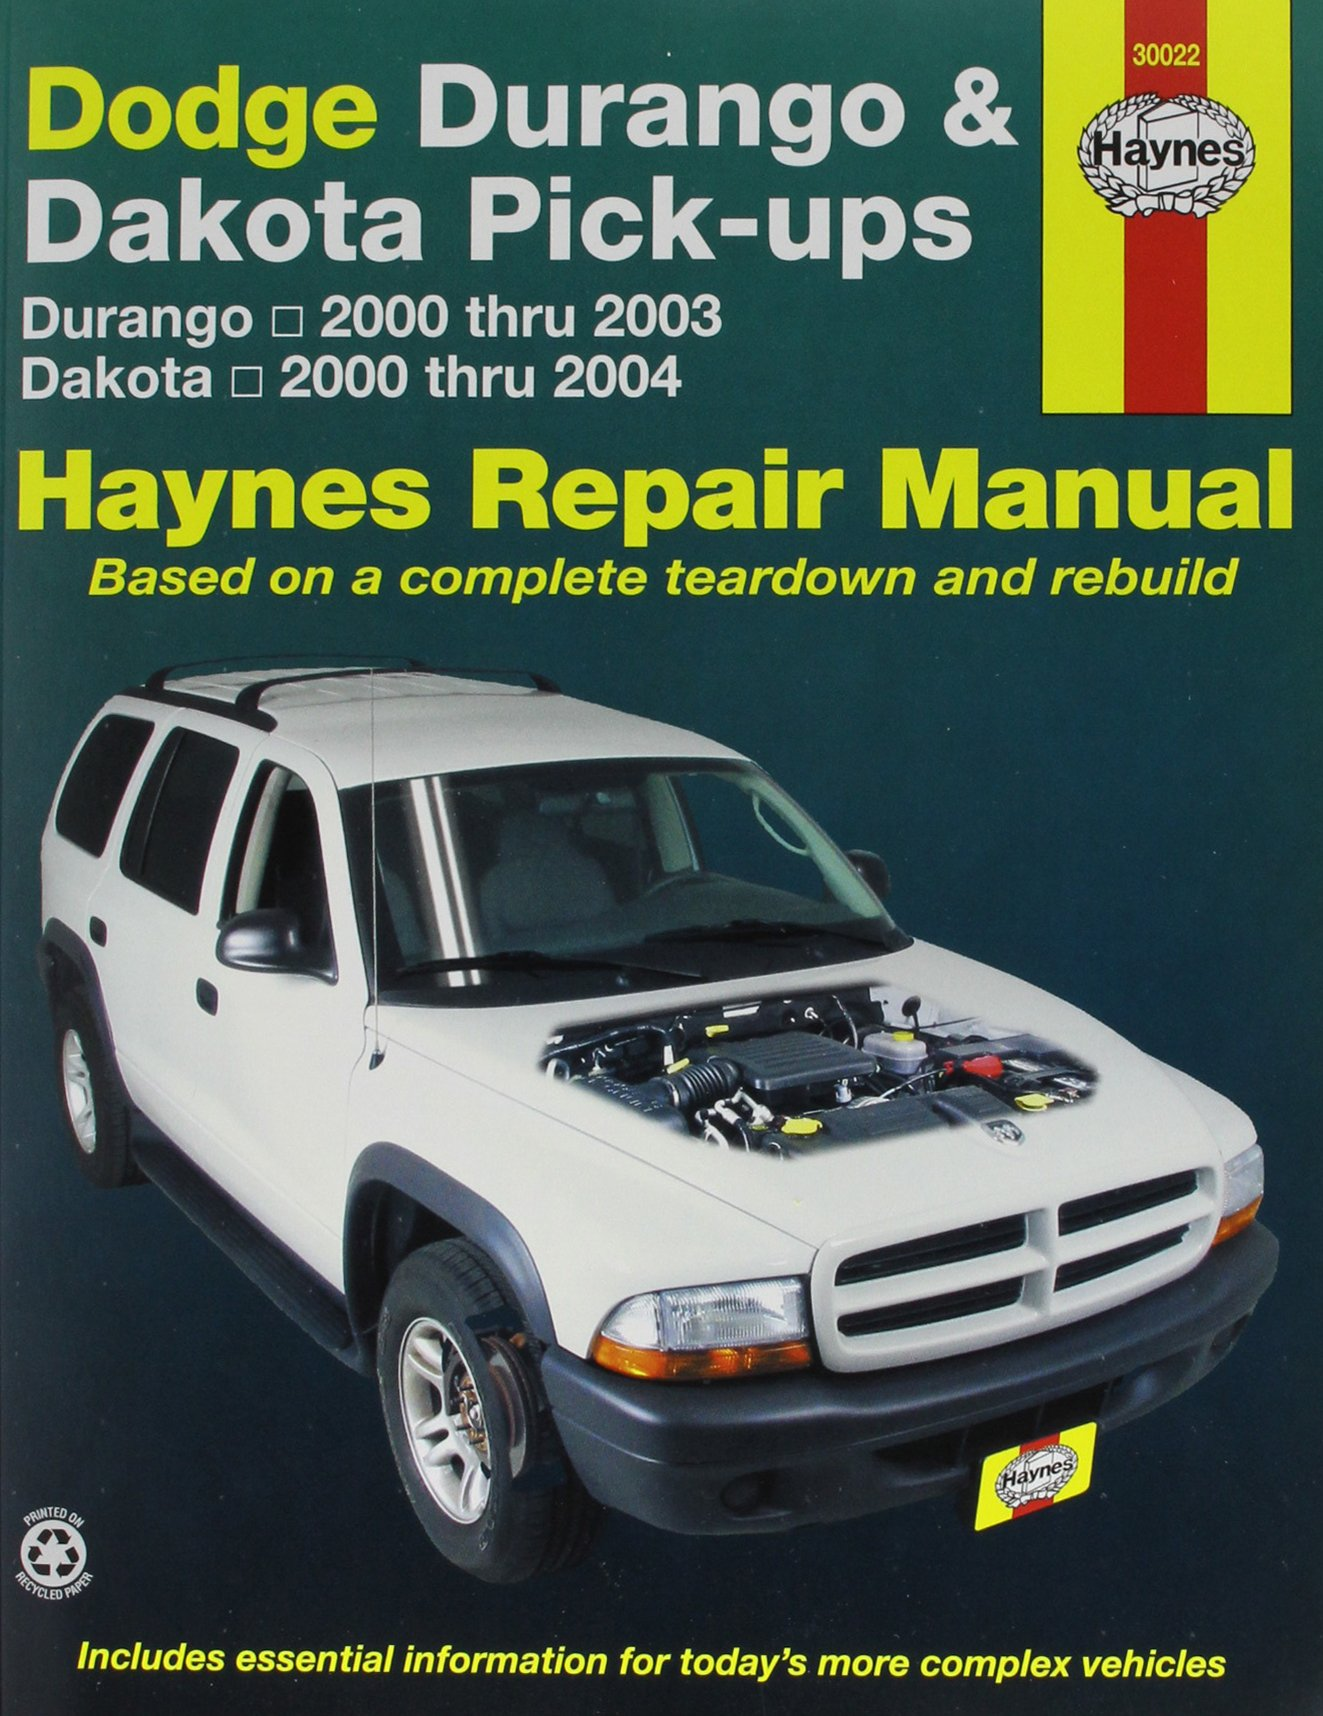 Dodge Durango And Dakota Pick Ups 2000 2003 Repair Manual 0038345300226 Amazon Com Books